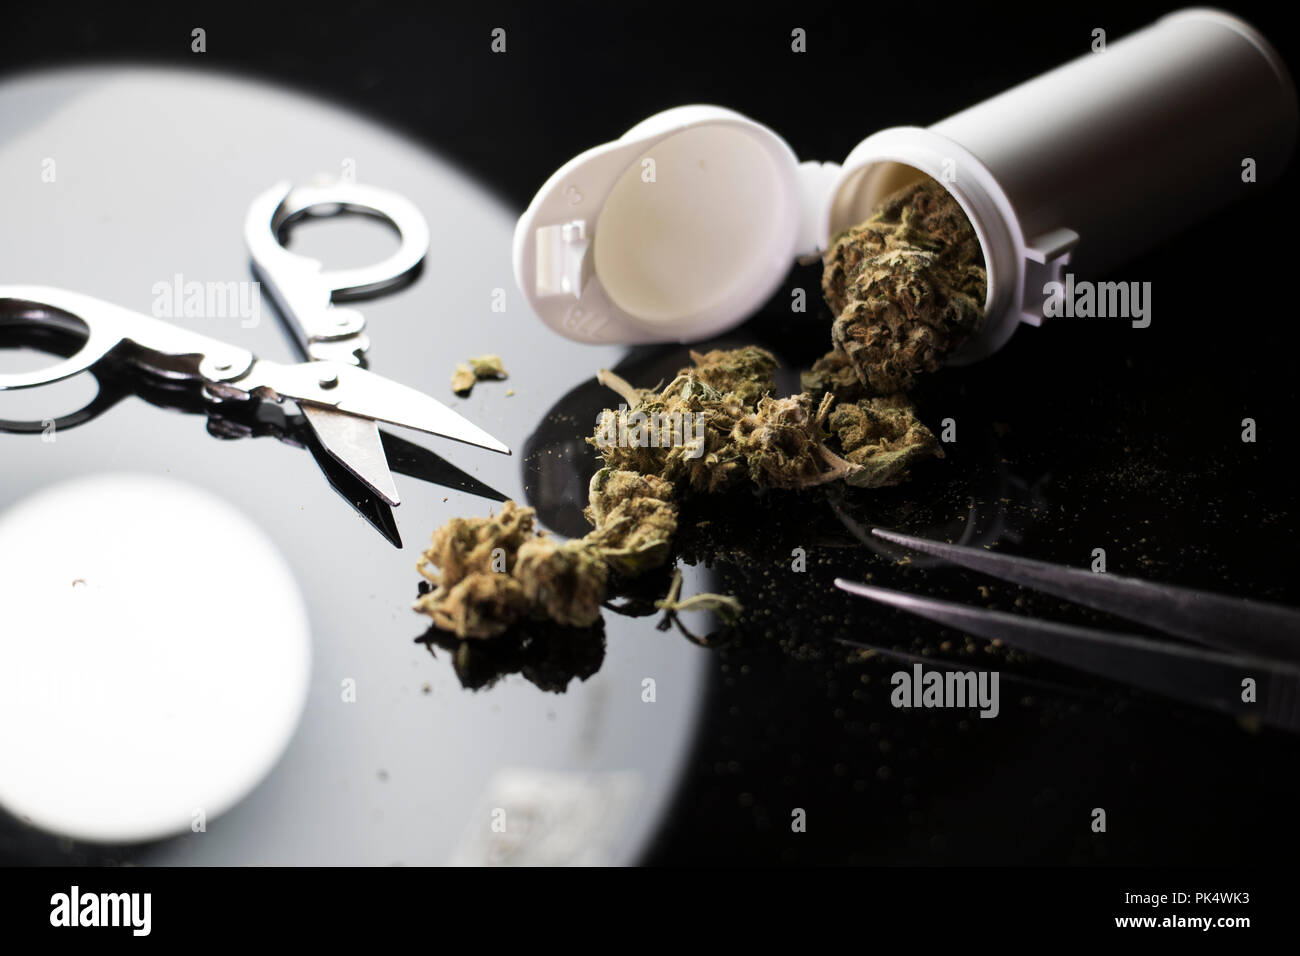 Mary Jane. Medical weed. Legalized Cannabis. - Stock Image